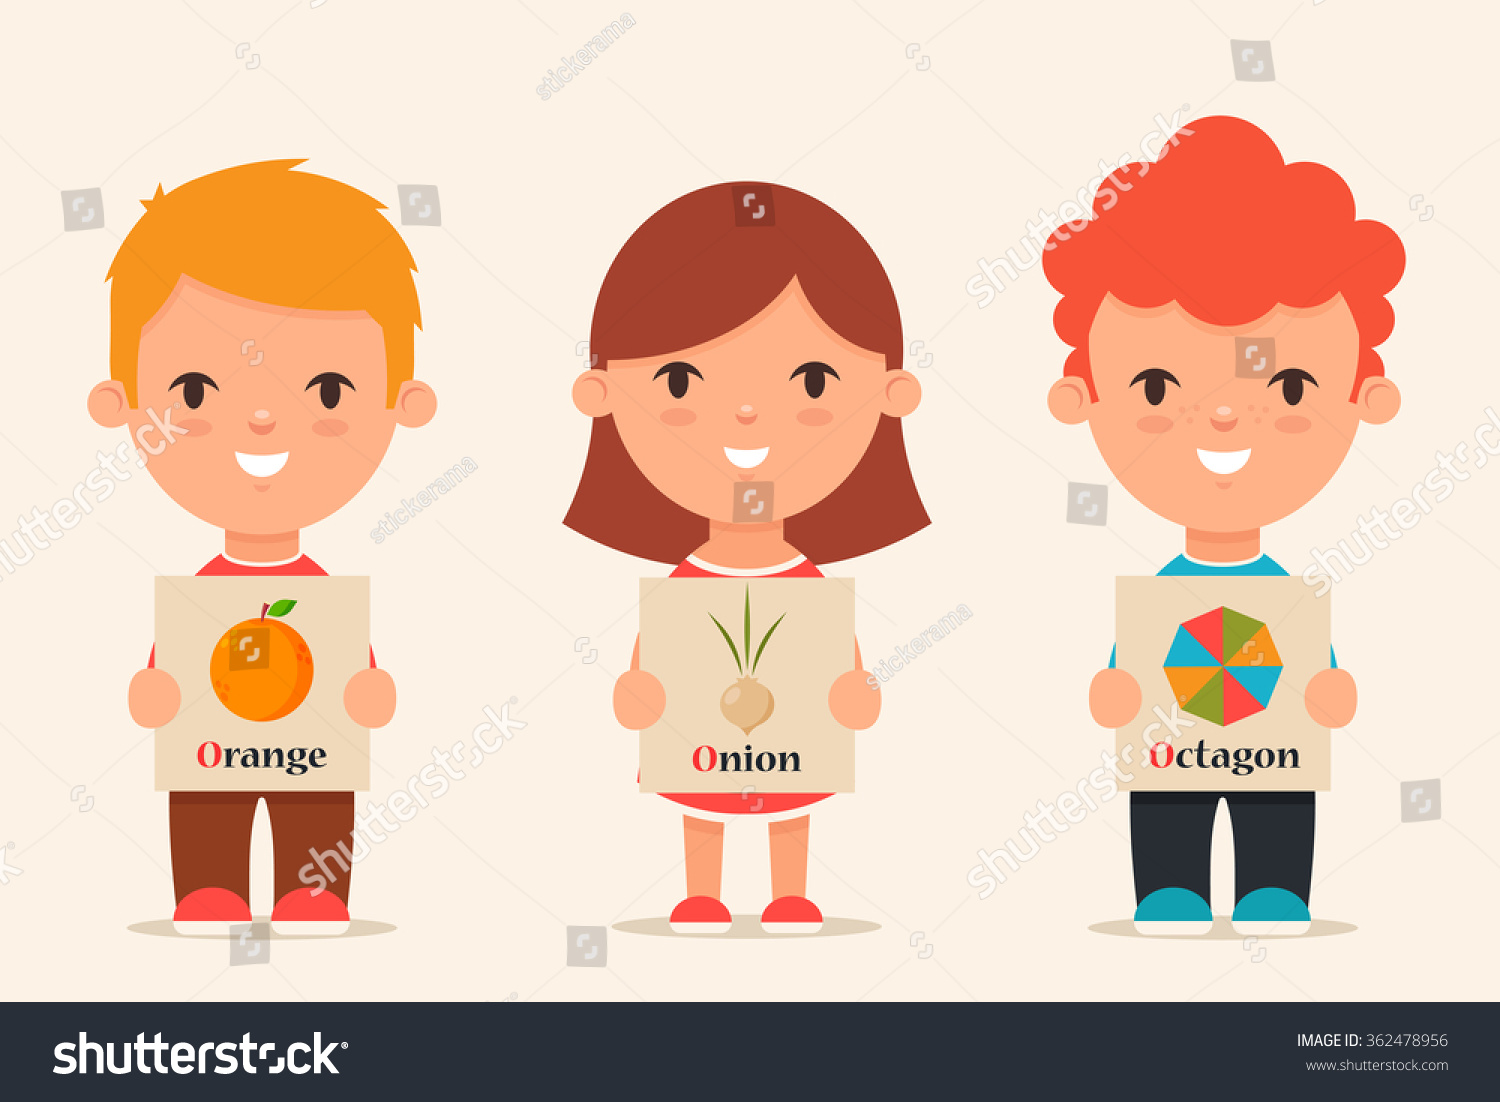 Worksheet Words That Start With O For Kids cute cartoon kids holding pictures words stock vector 362478956 with that start o set